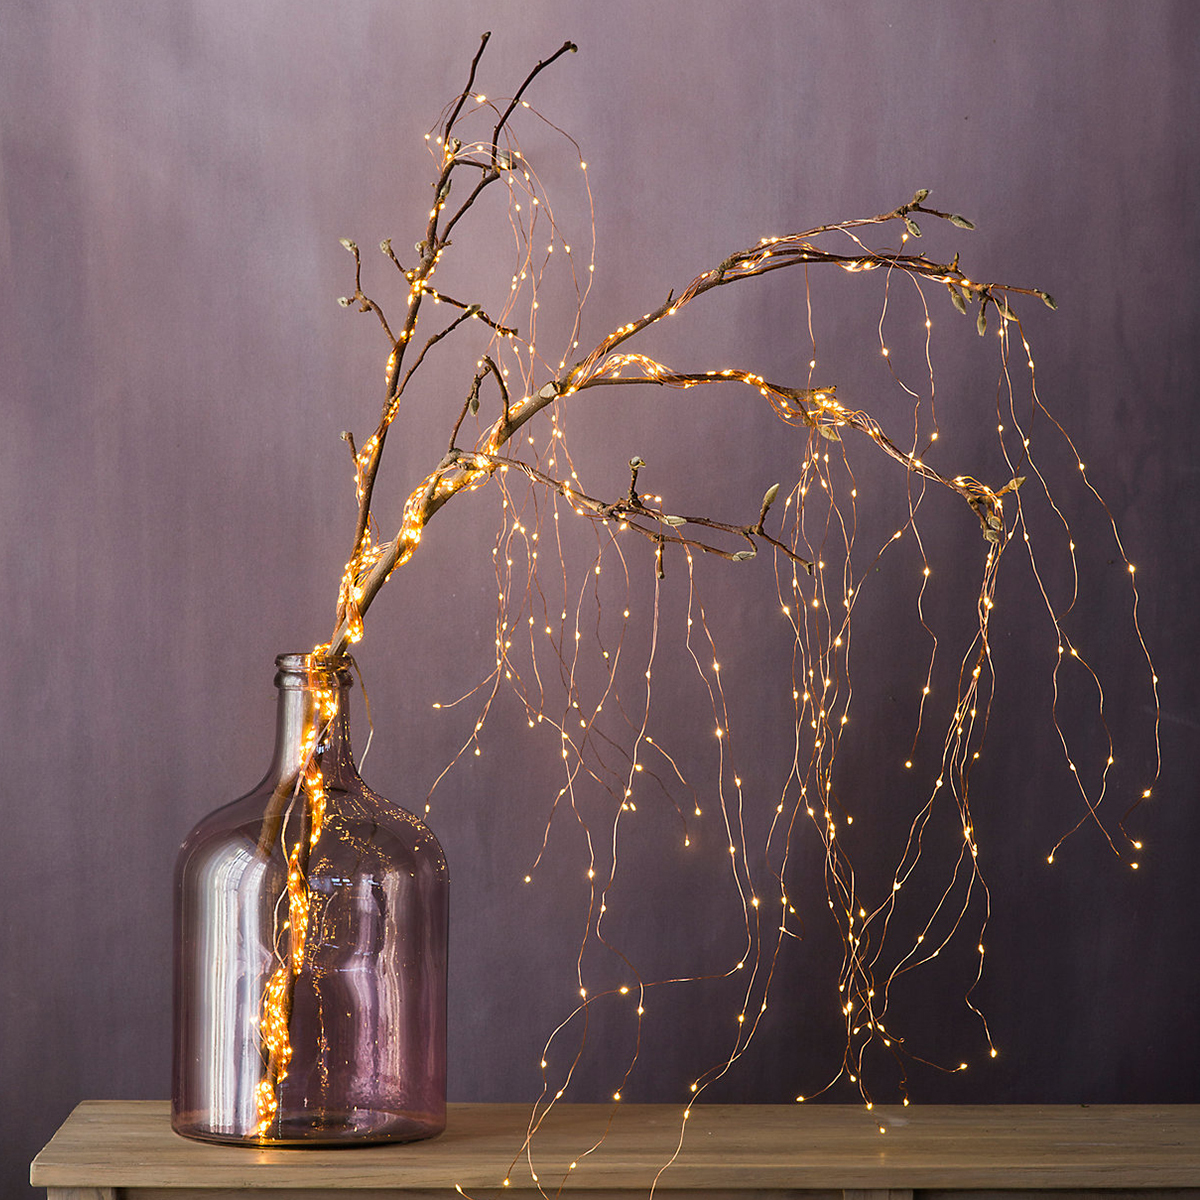 Terrain magnolia branches in a recycled glass vase with cascading lights photo